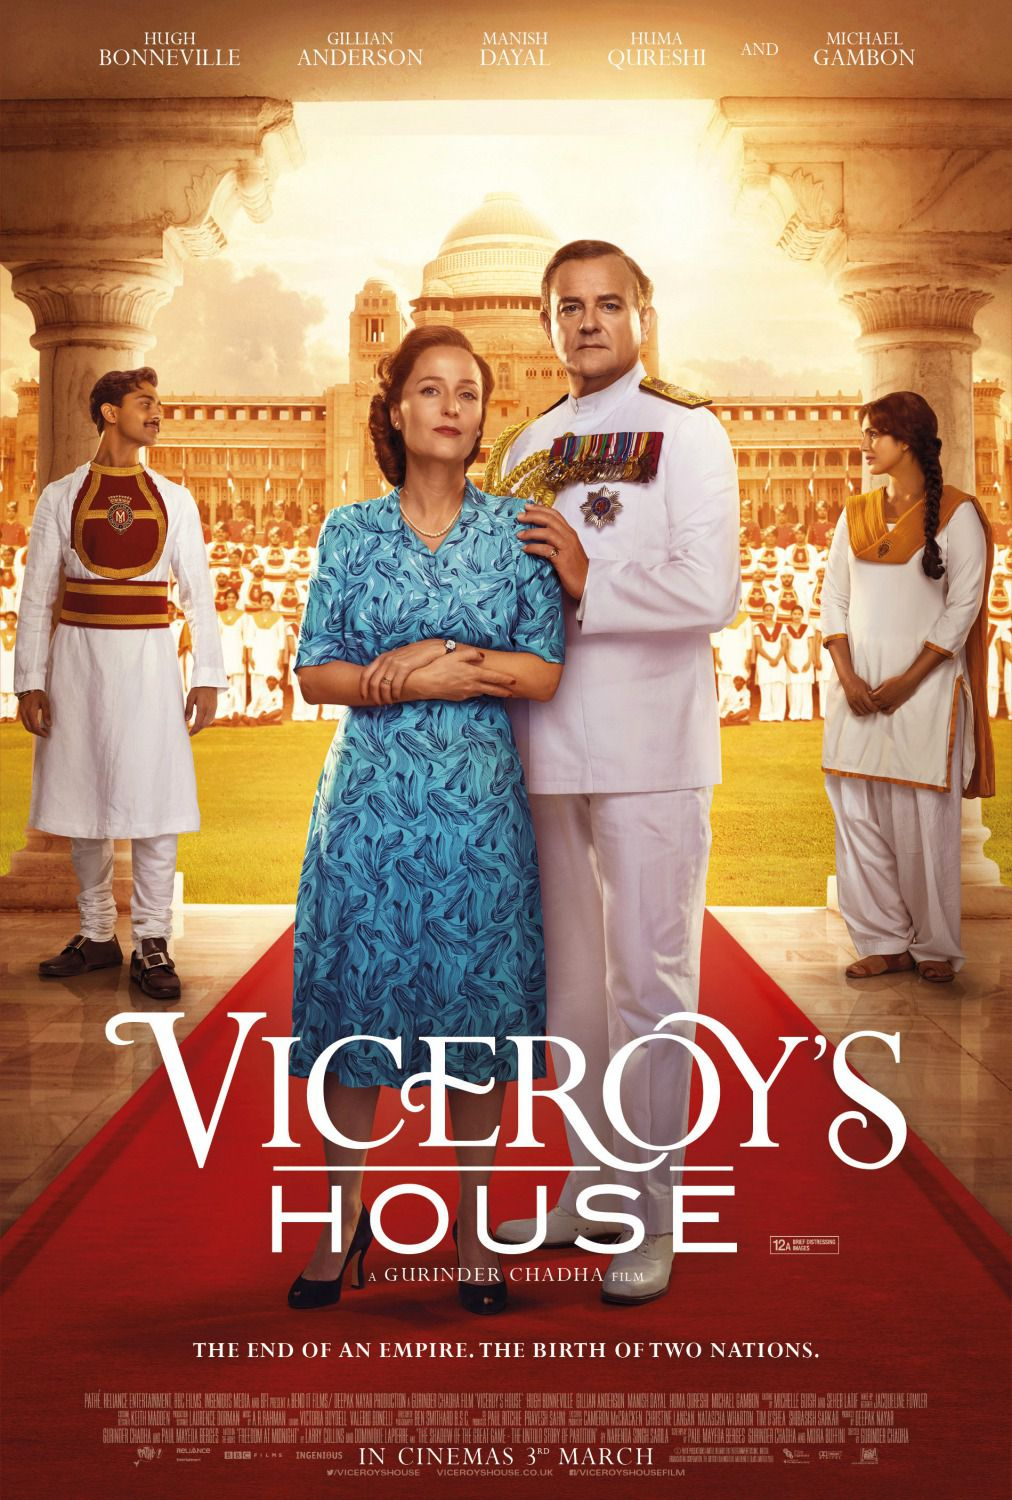 Viceroy's house - le Dernier Vice-Roi des Indies - Ultimo Vicere delle Indie - fim history poster